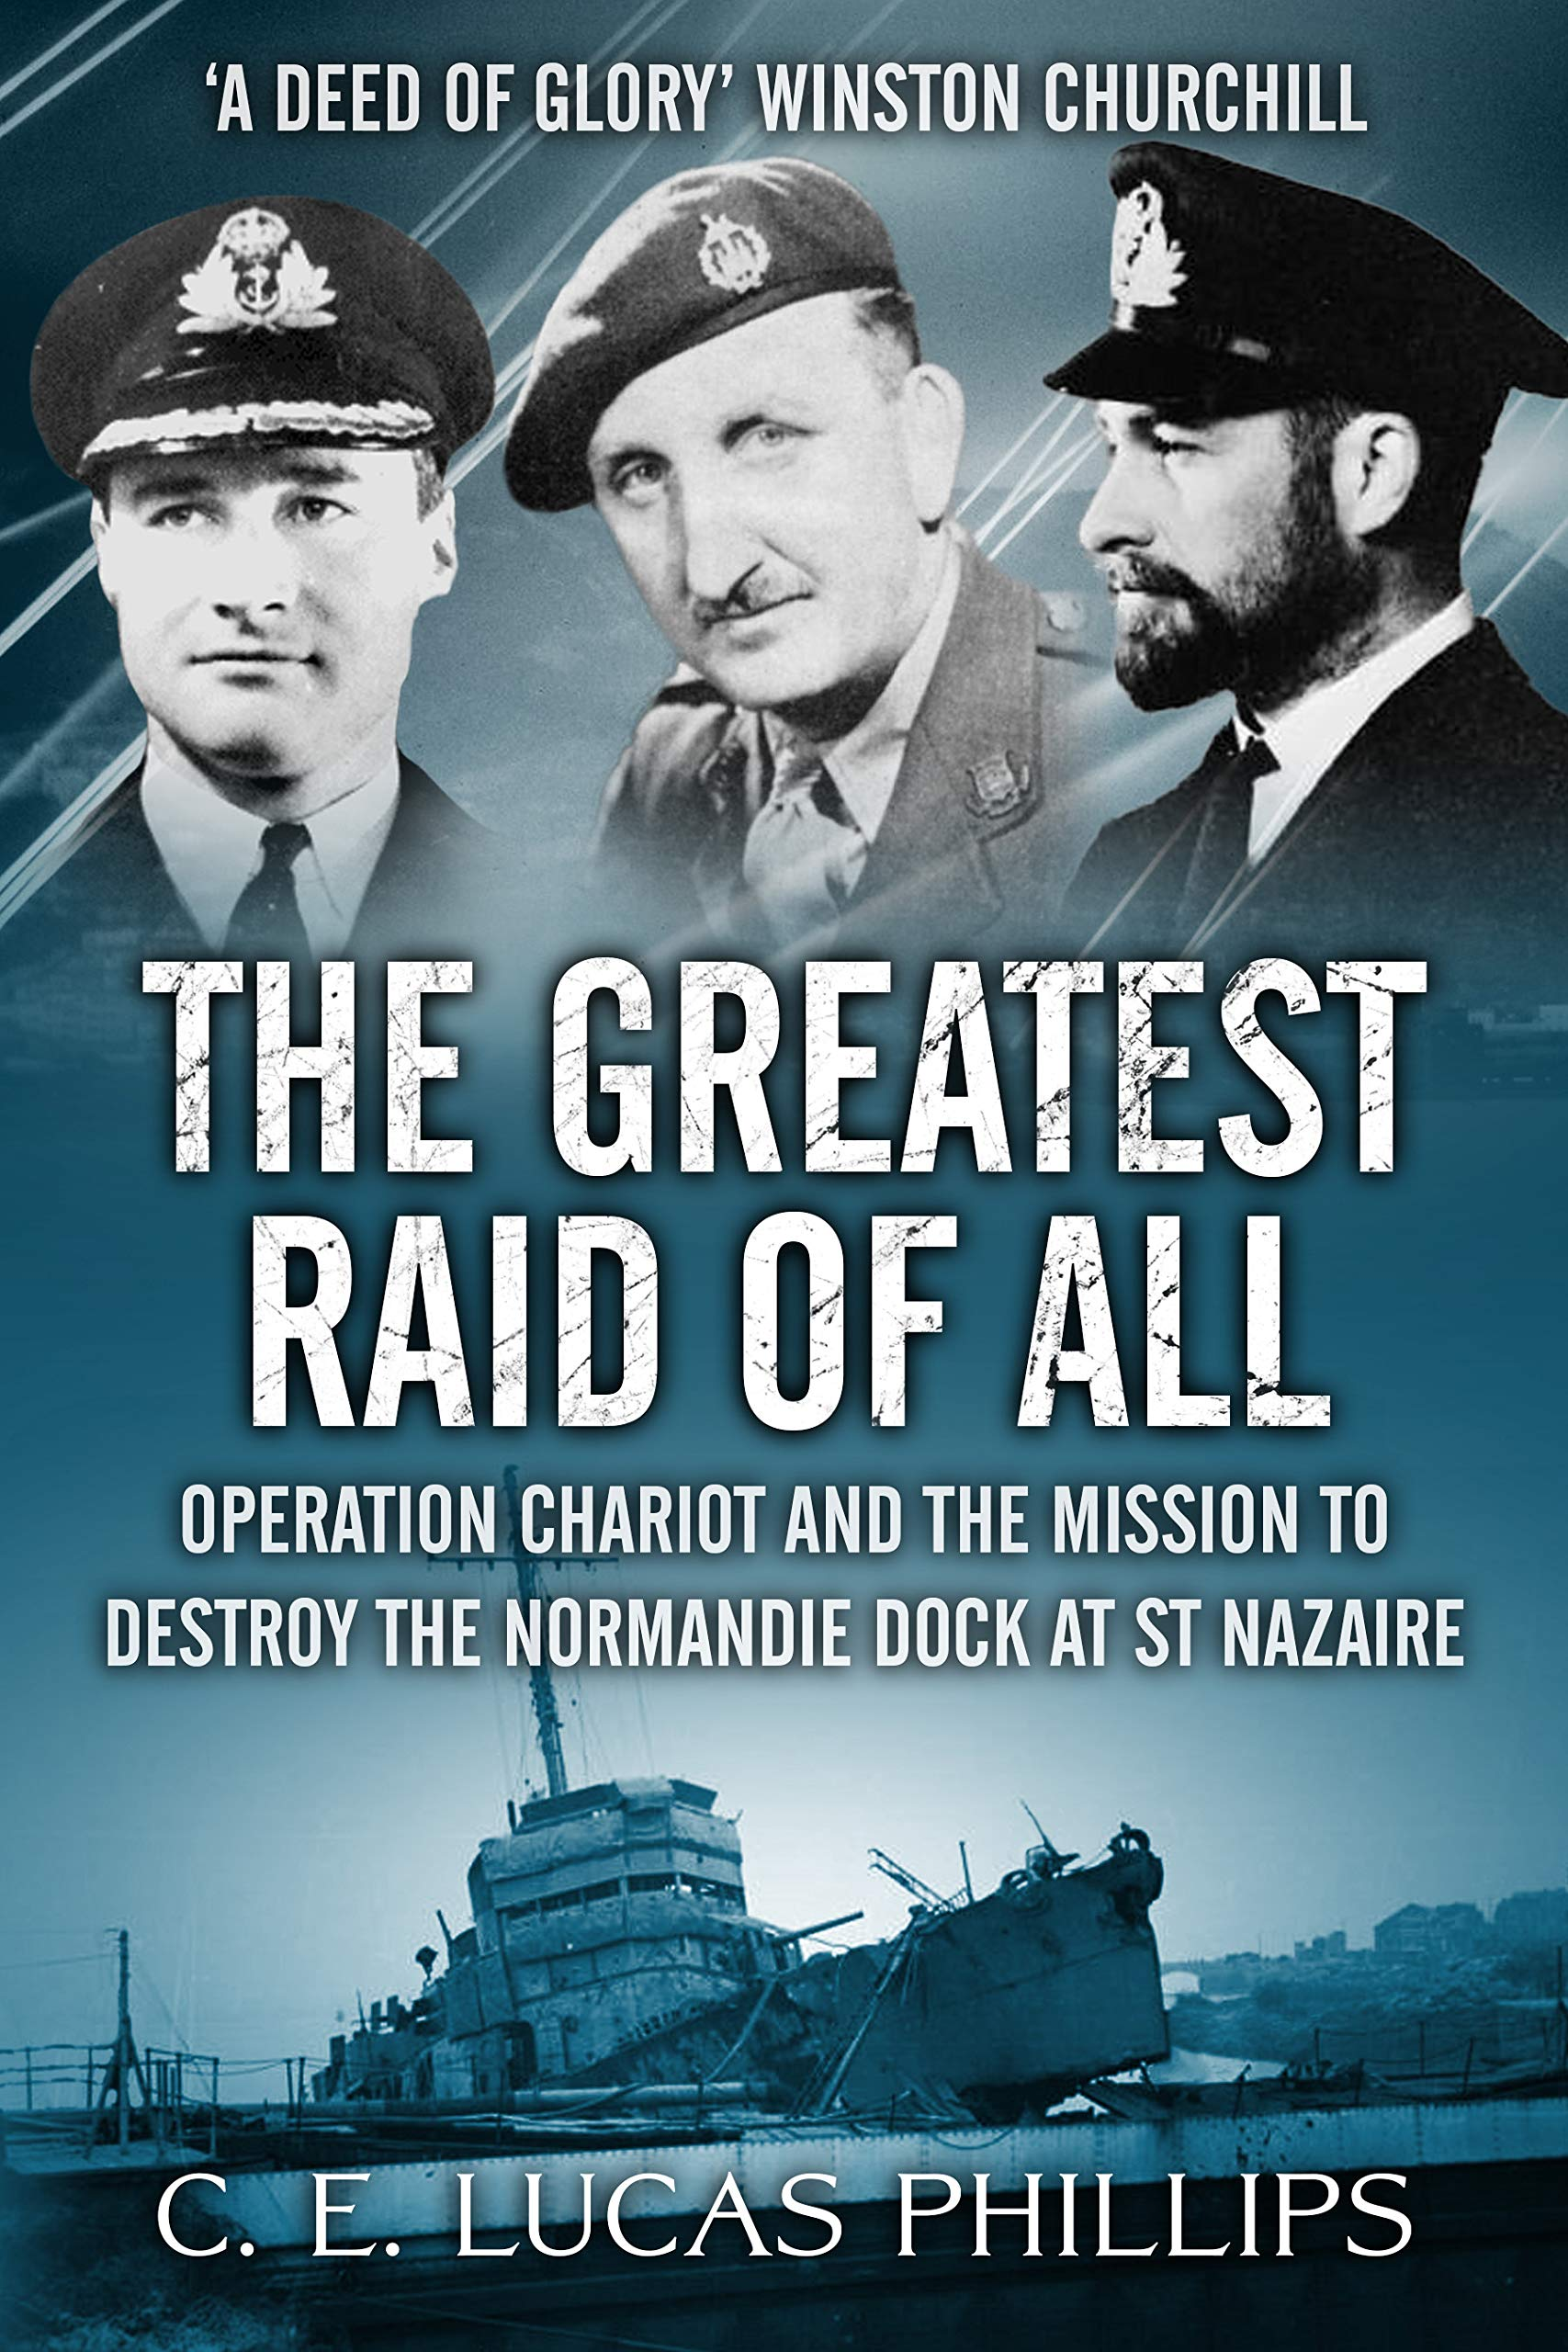 The Greatest Raid of All: Operation Chariot and the Mission to Destroy the Normandie Dock at St Nazaire